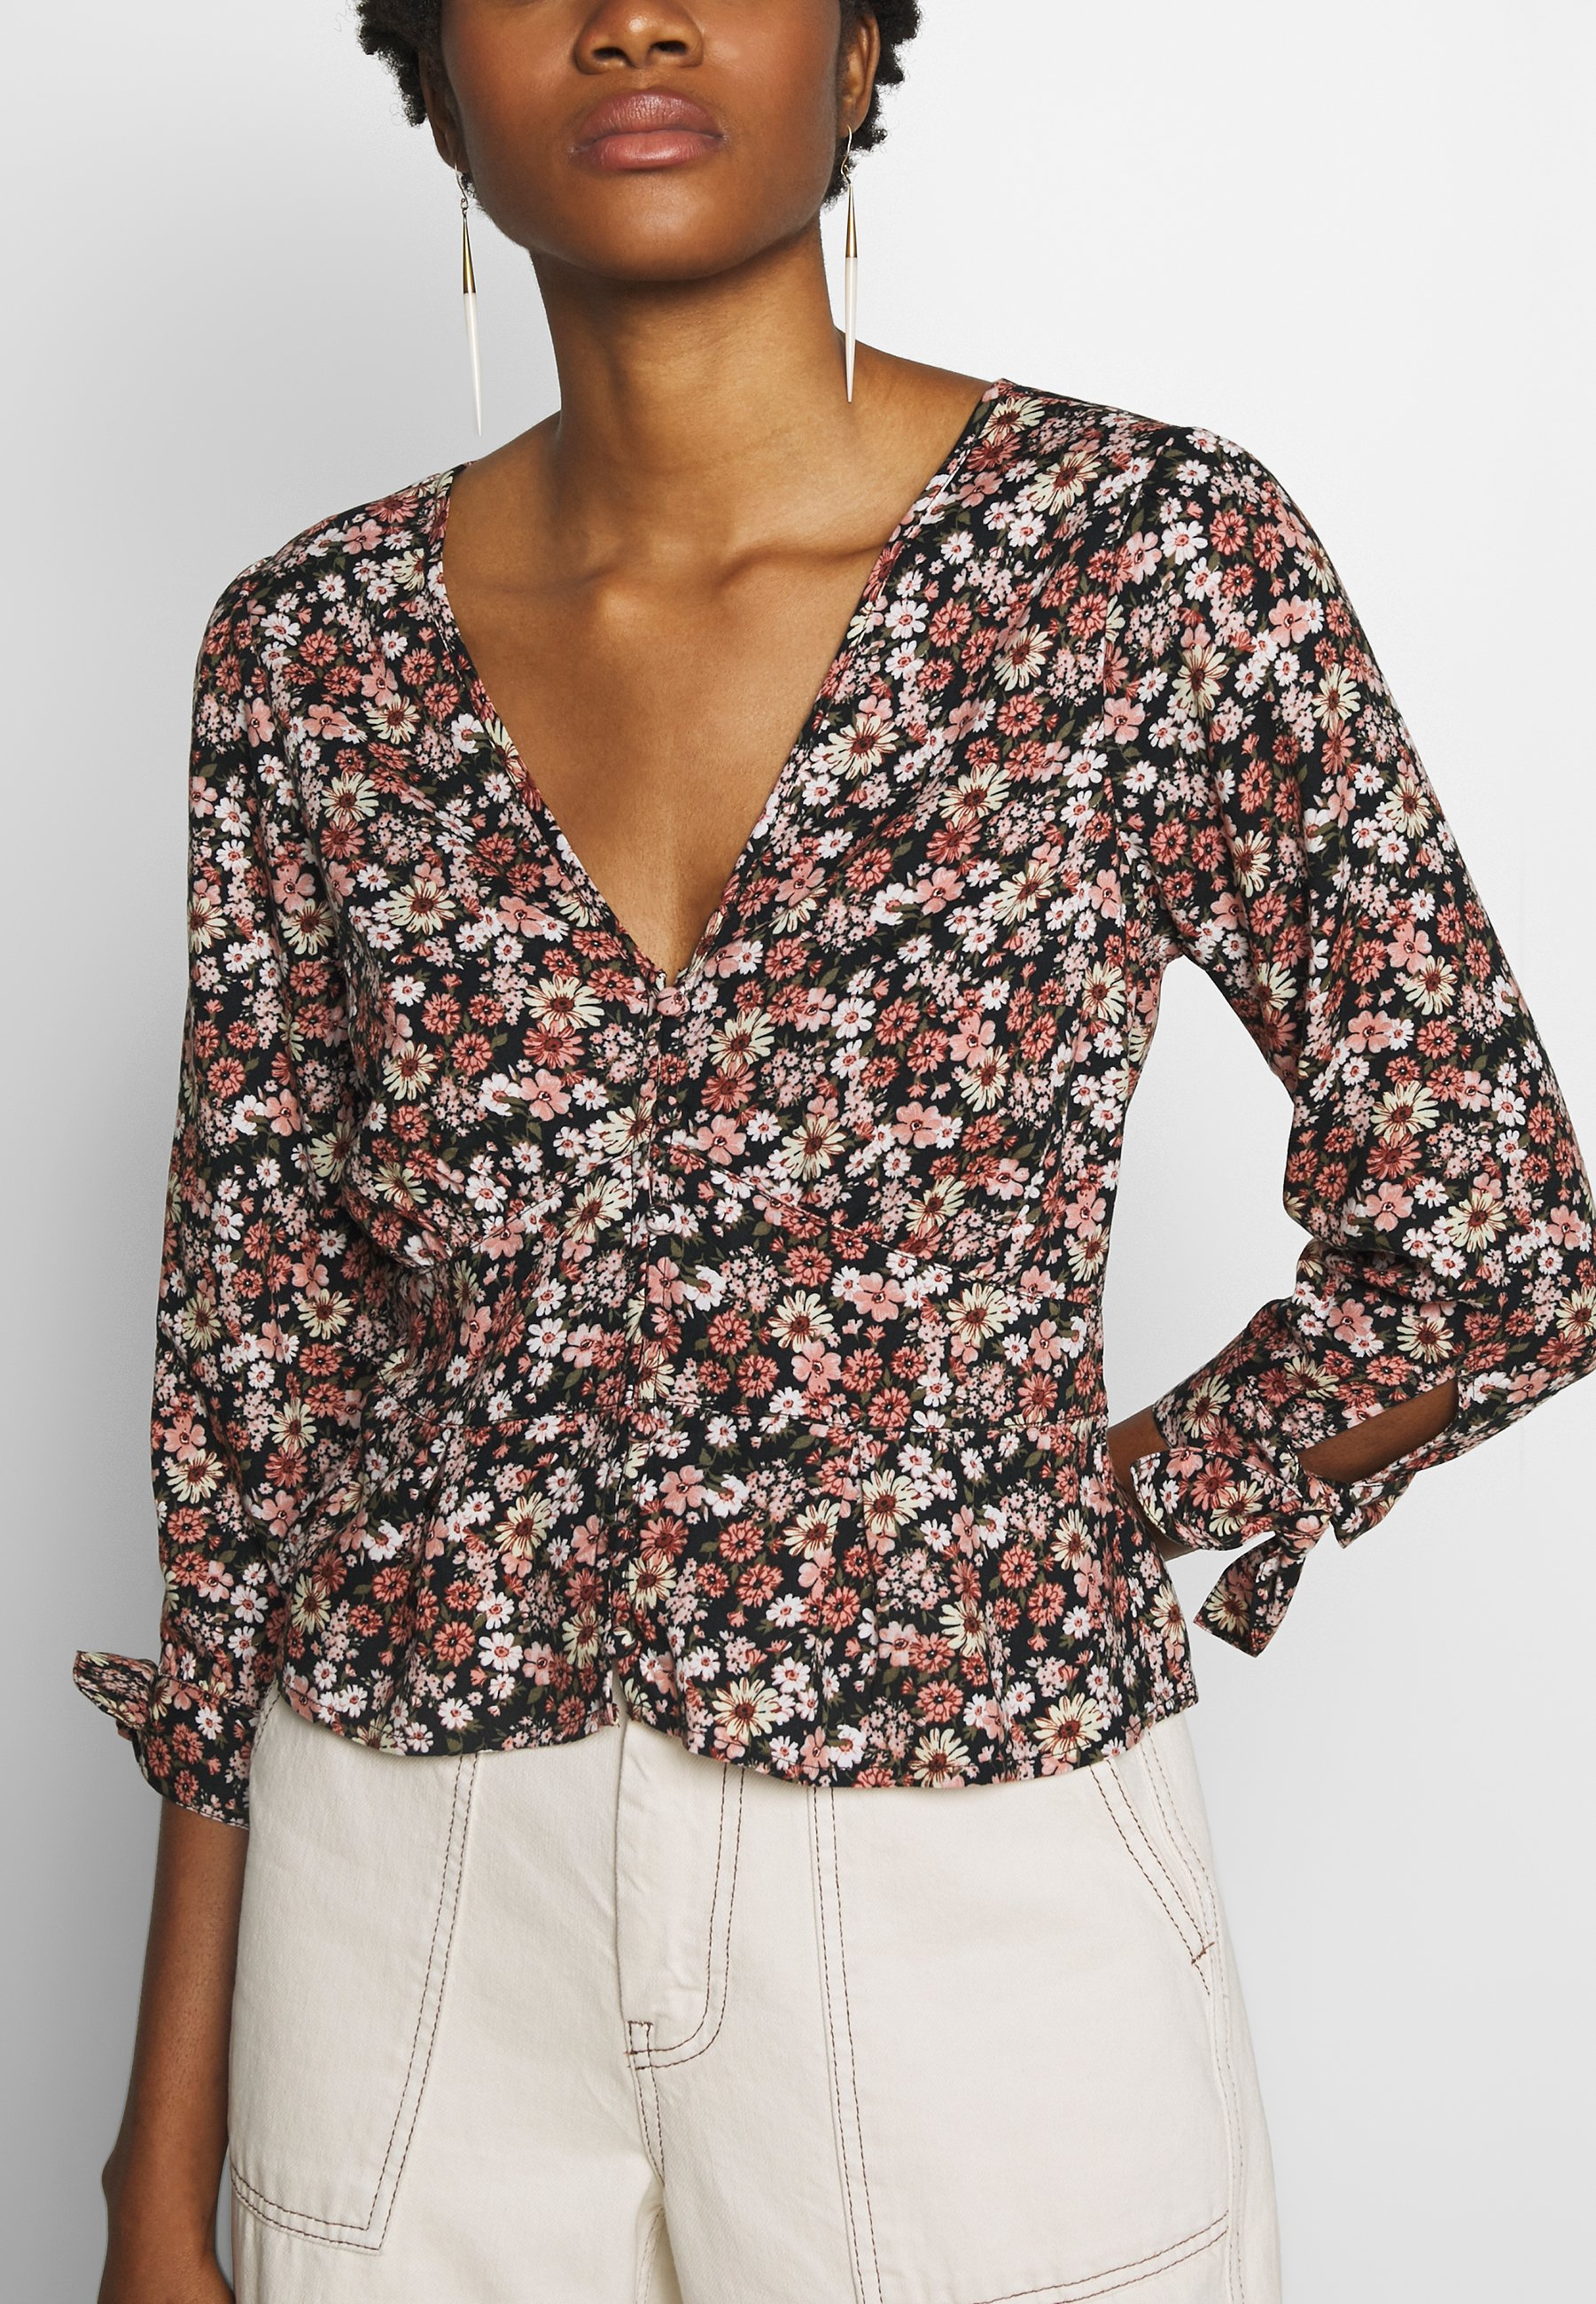 Abercrombie & Fitch Mimosa - Blouse Black